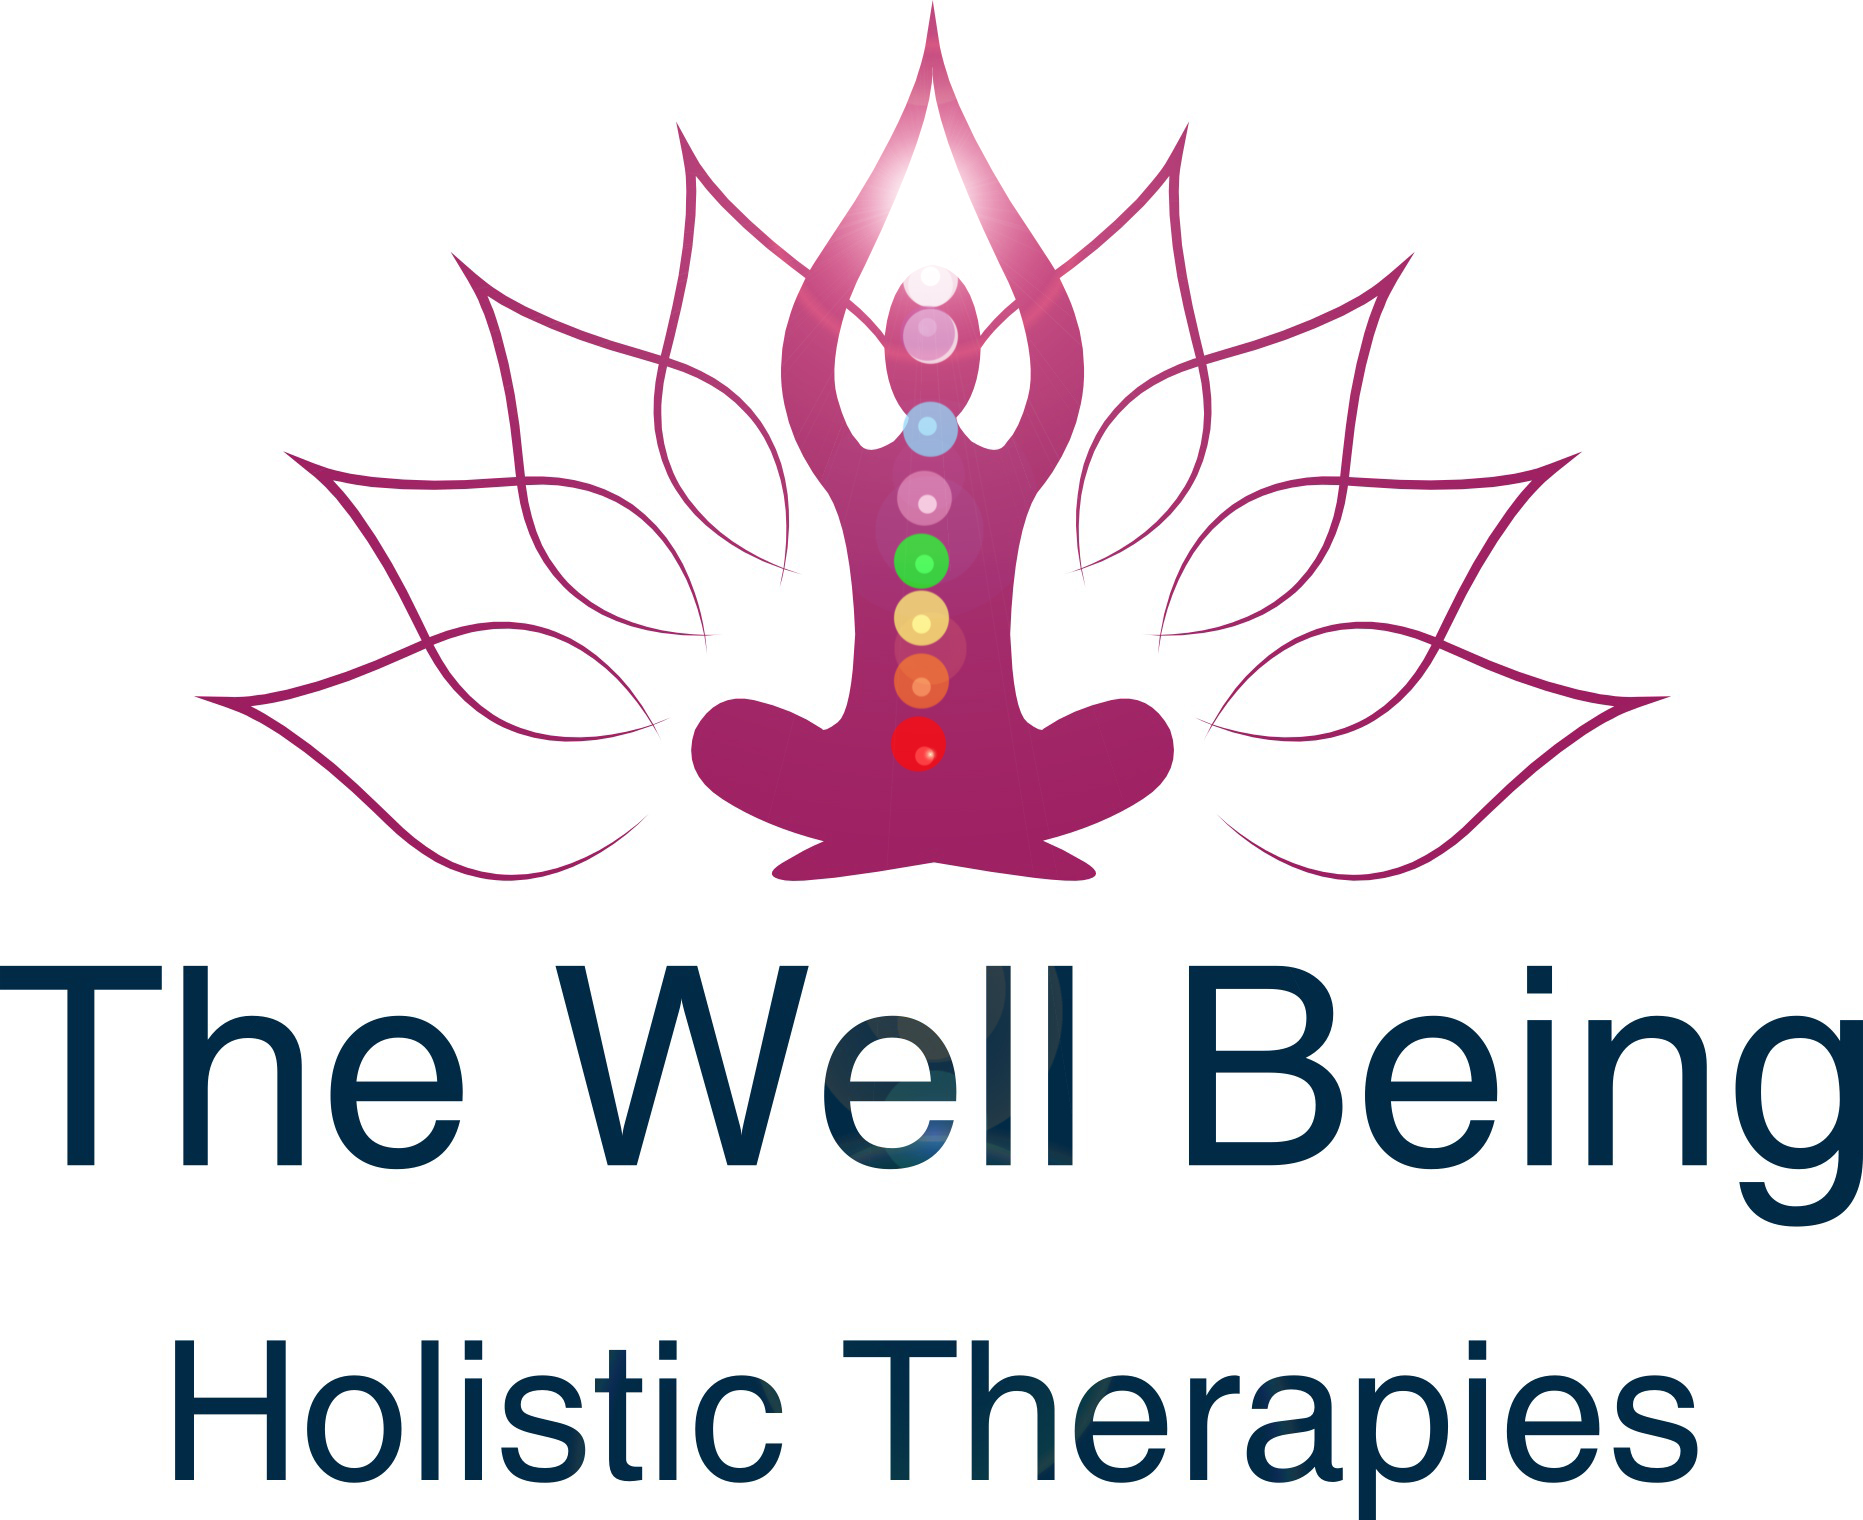 The Well Being company logo